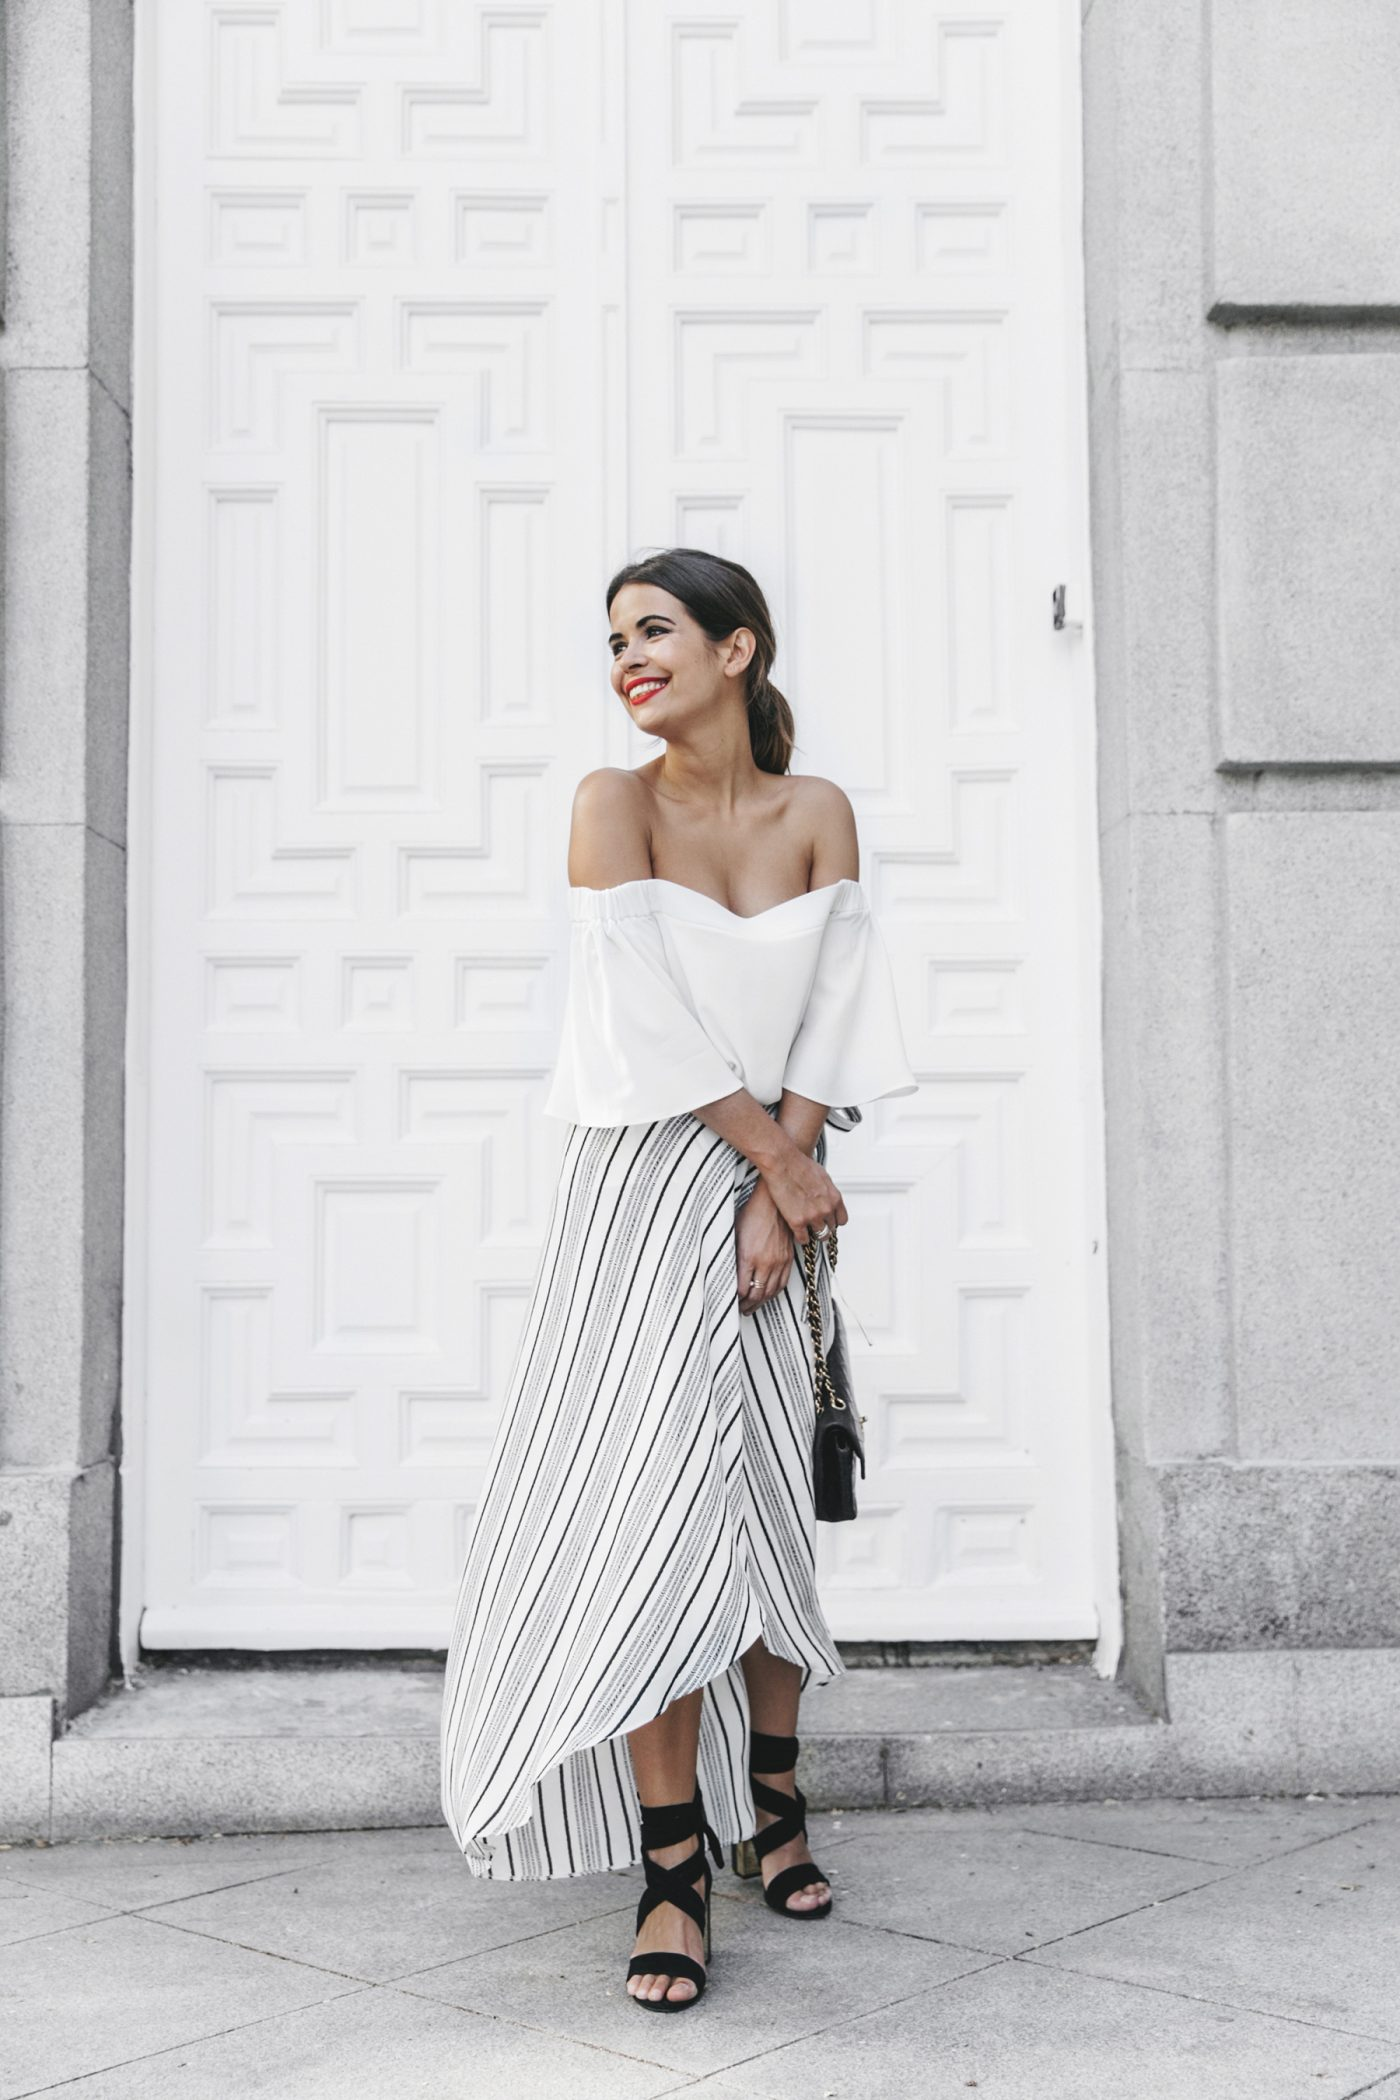 River_Island-El_Imparcial-Striped_SKirt-Off_Shoulders_Top-Lace_Up_Sandals-CHanel_Vintage_Bag-20